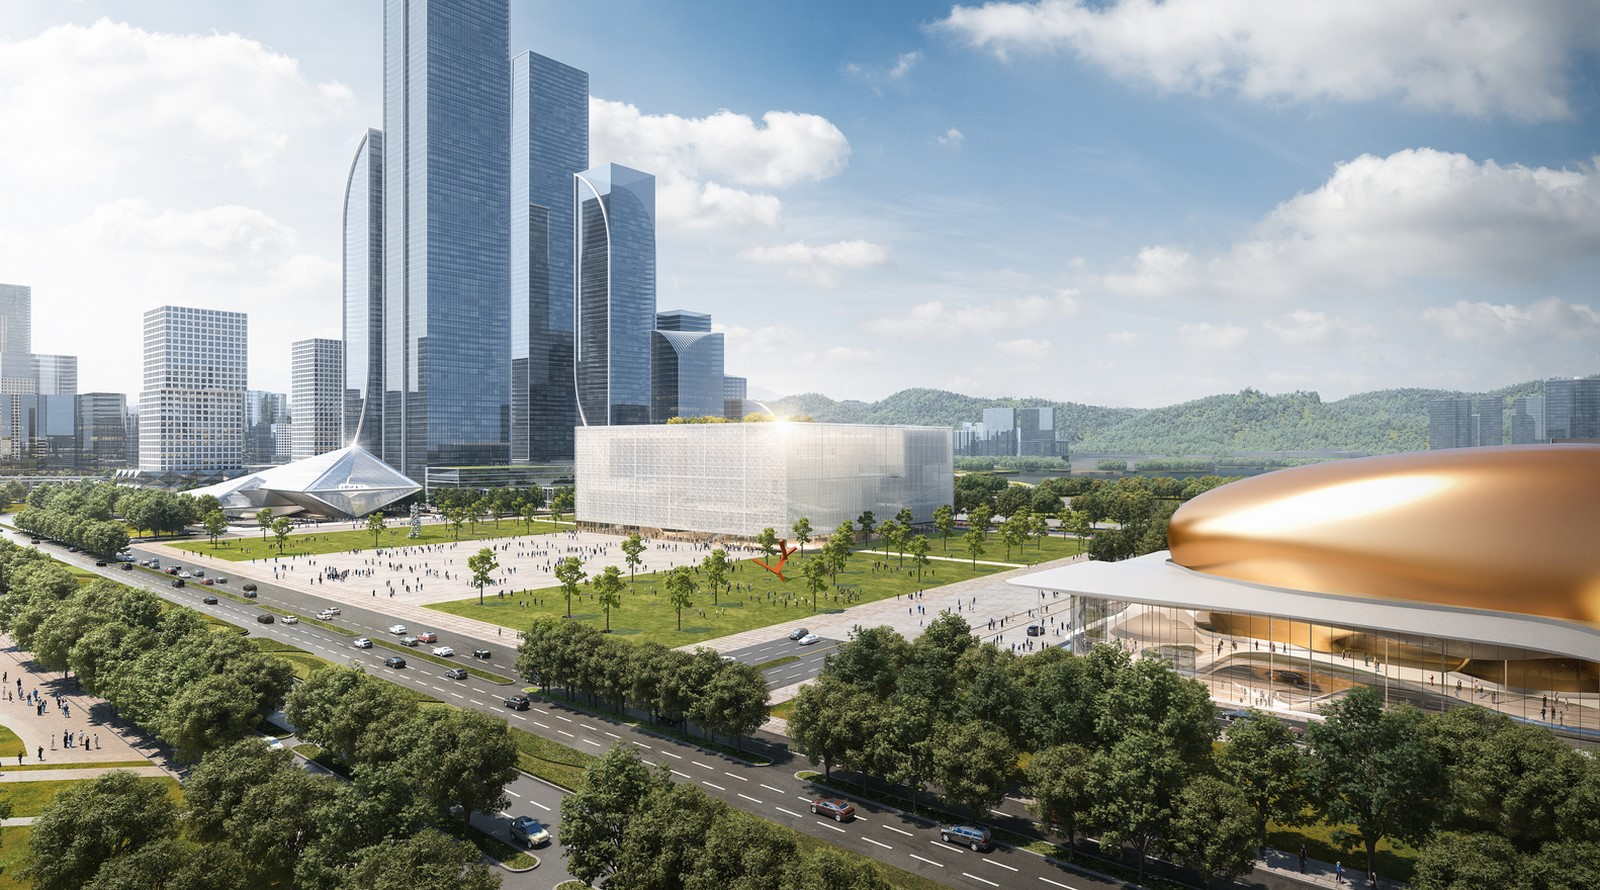 Shenzhen exhibition complex with transparent facade designed by Sou Fujimoto - Sheet4